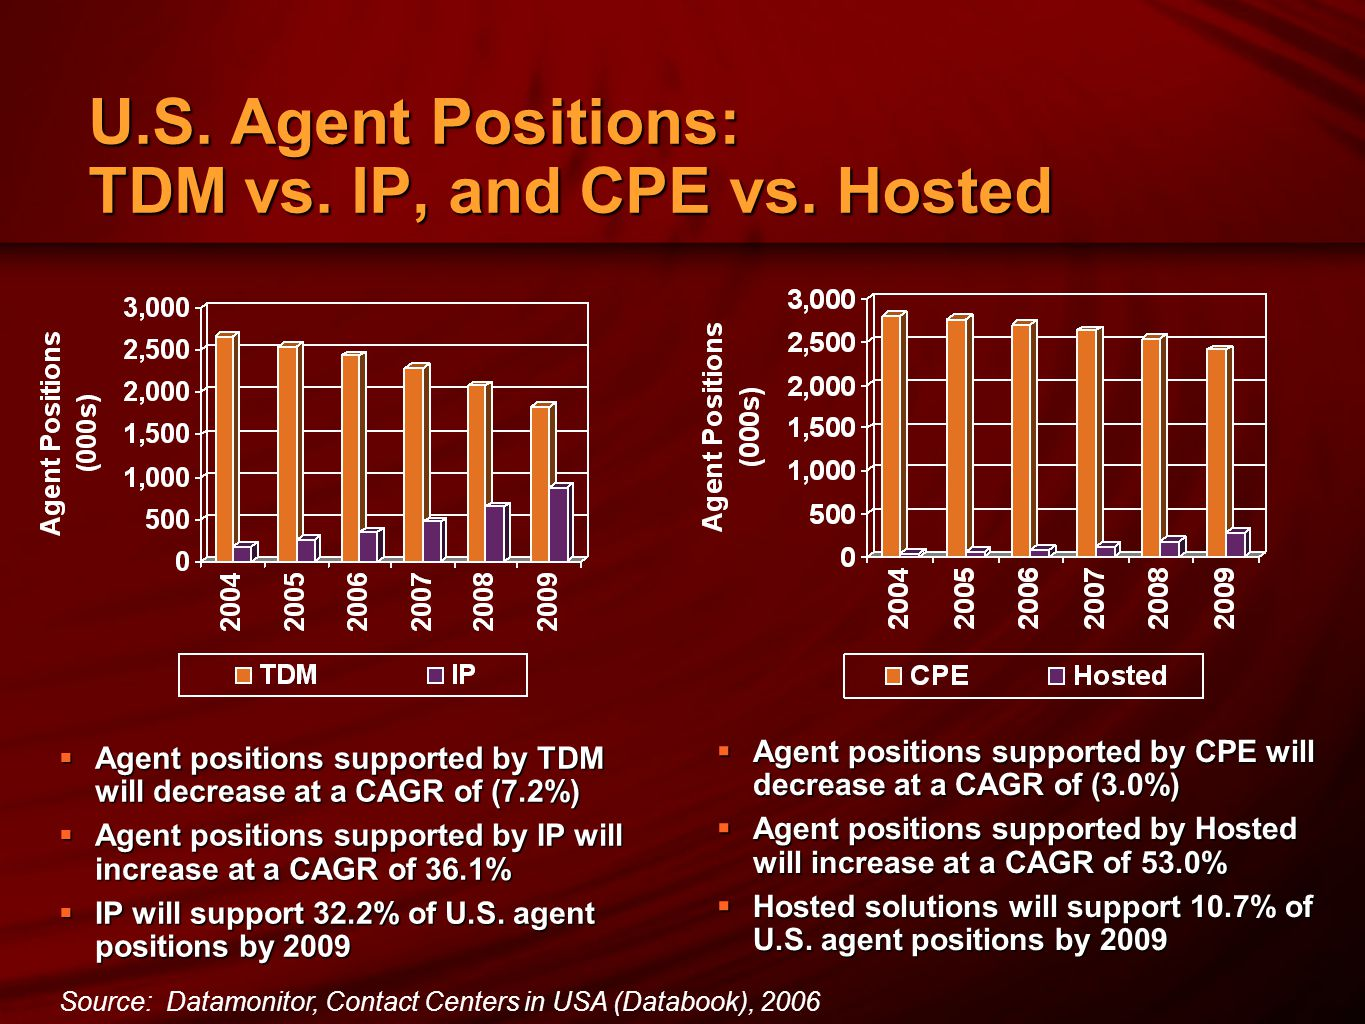 U.S.Agent Positions: TDM vs. IP, and CPE vs.